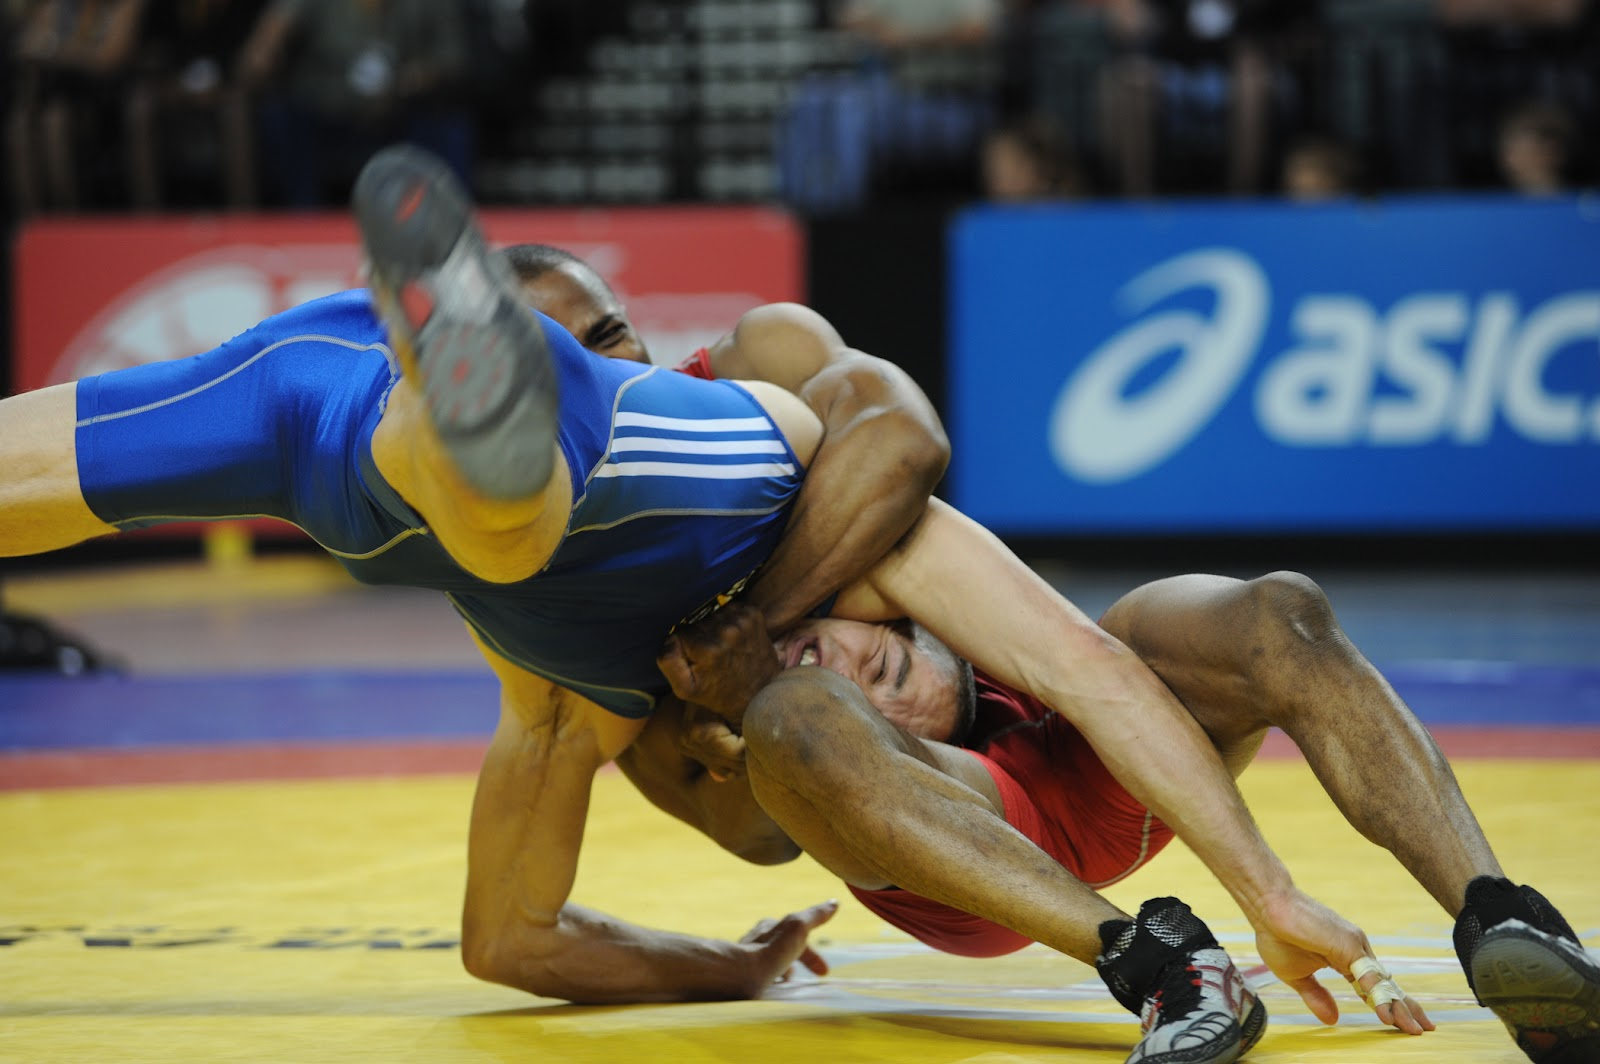 Funny Wallpapers Usa wrestling olympic wrestling wrestling matcom 1600x1064